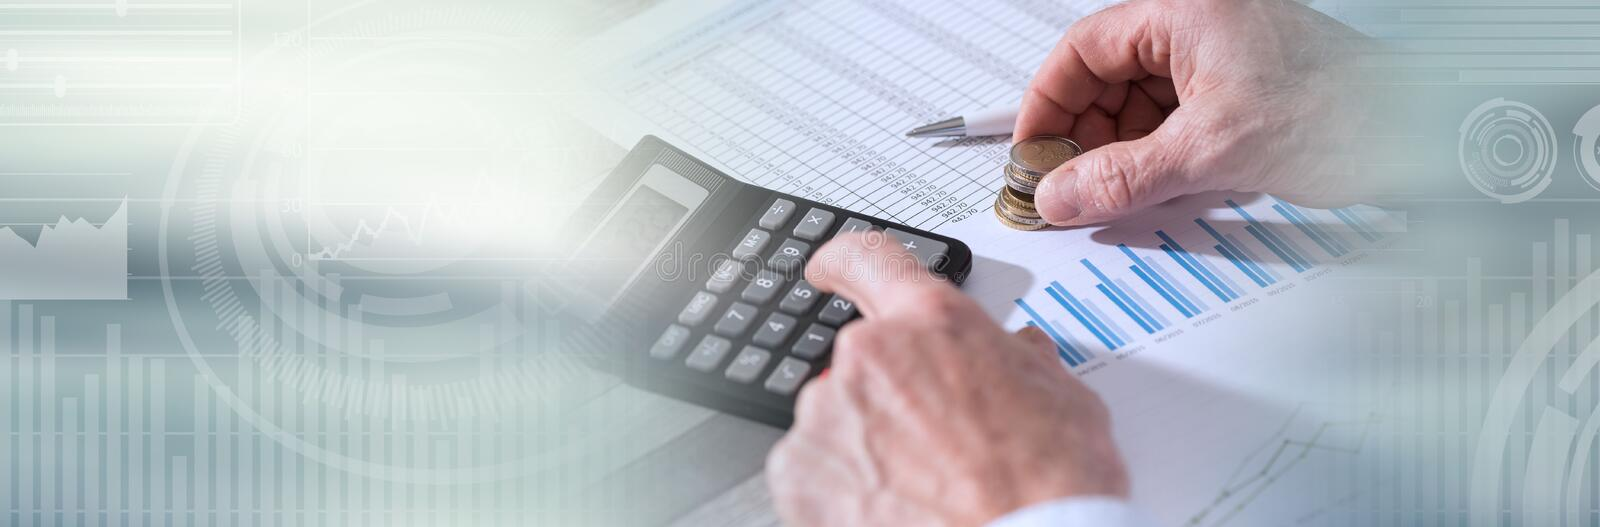 Hands of an accountant working on financial documents. panoramic banner royalty free stock photos